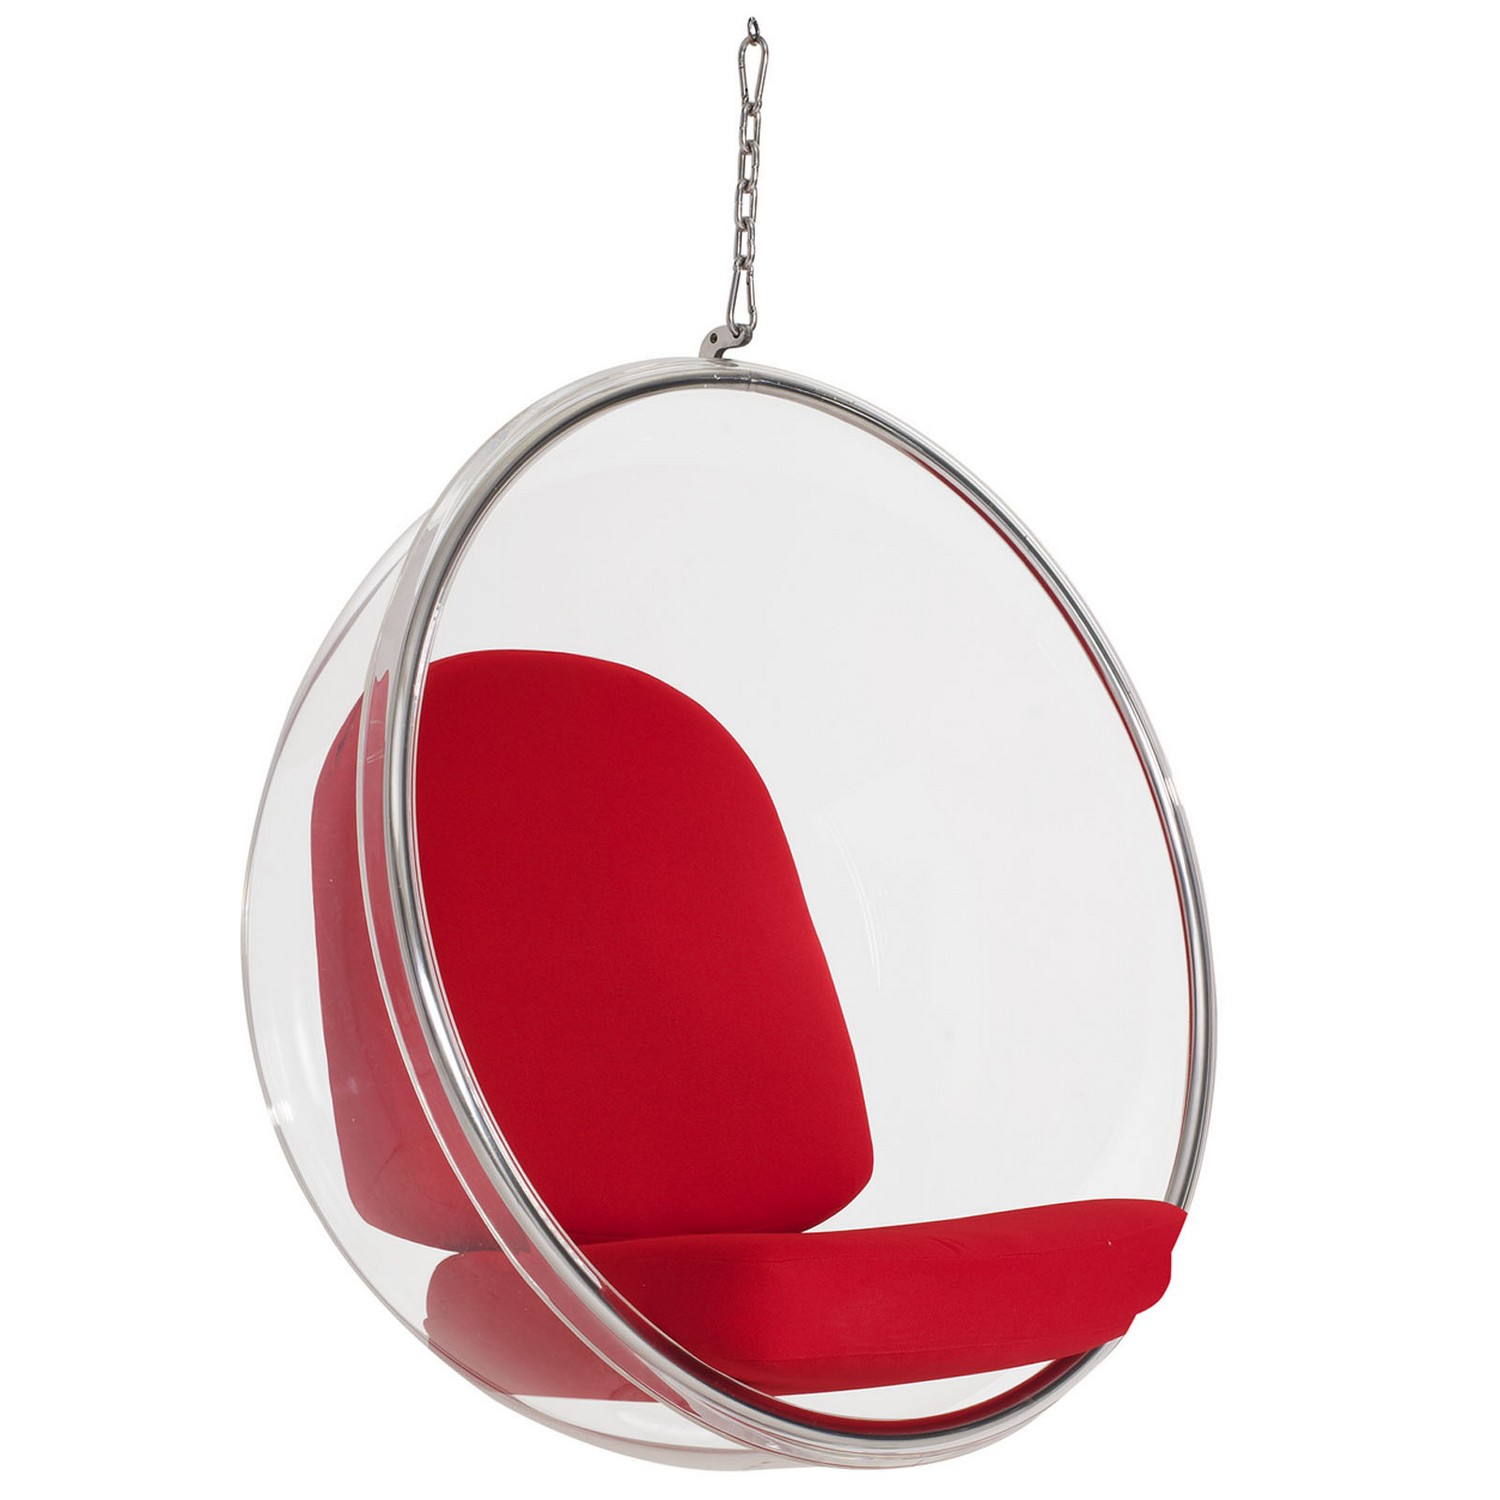 Modway Ring Lounge Chair - Red